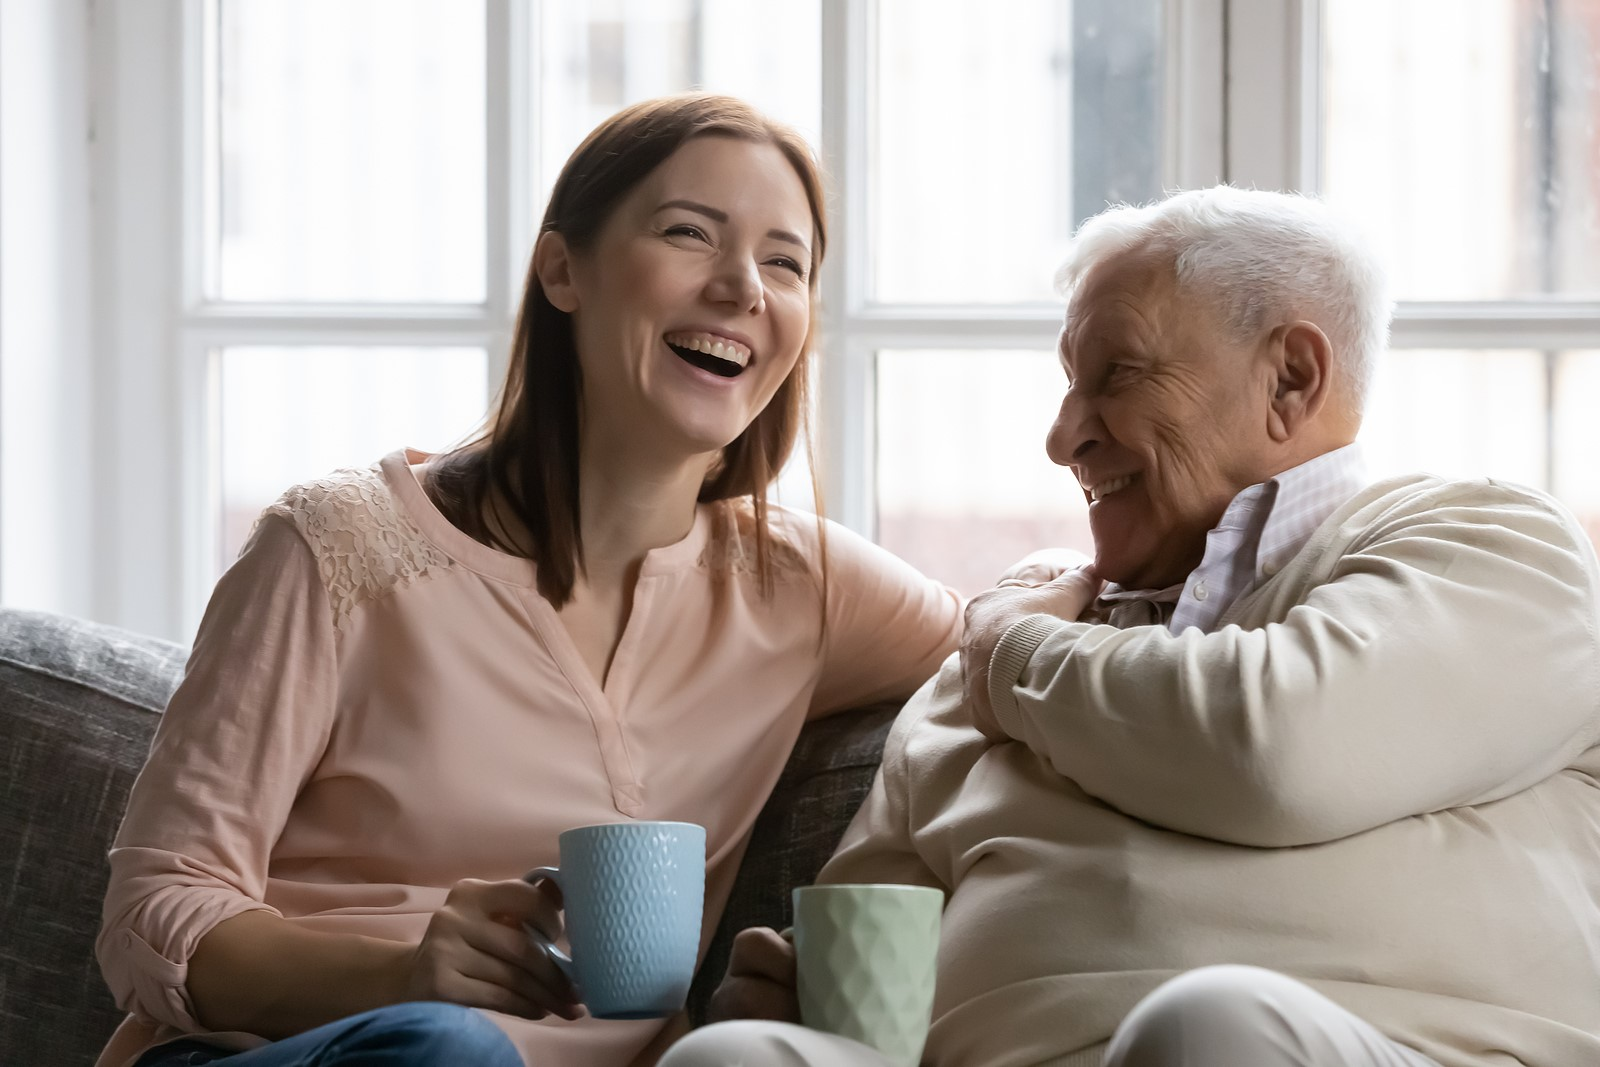 a young woman sitting with her elderly father smiling and laughing while enjoying a cup of coffee